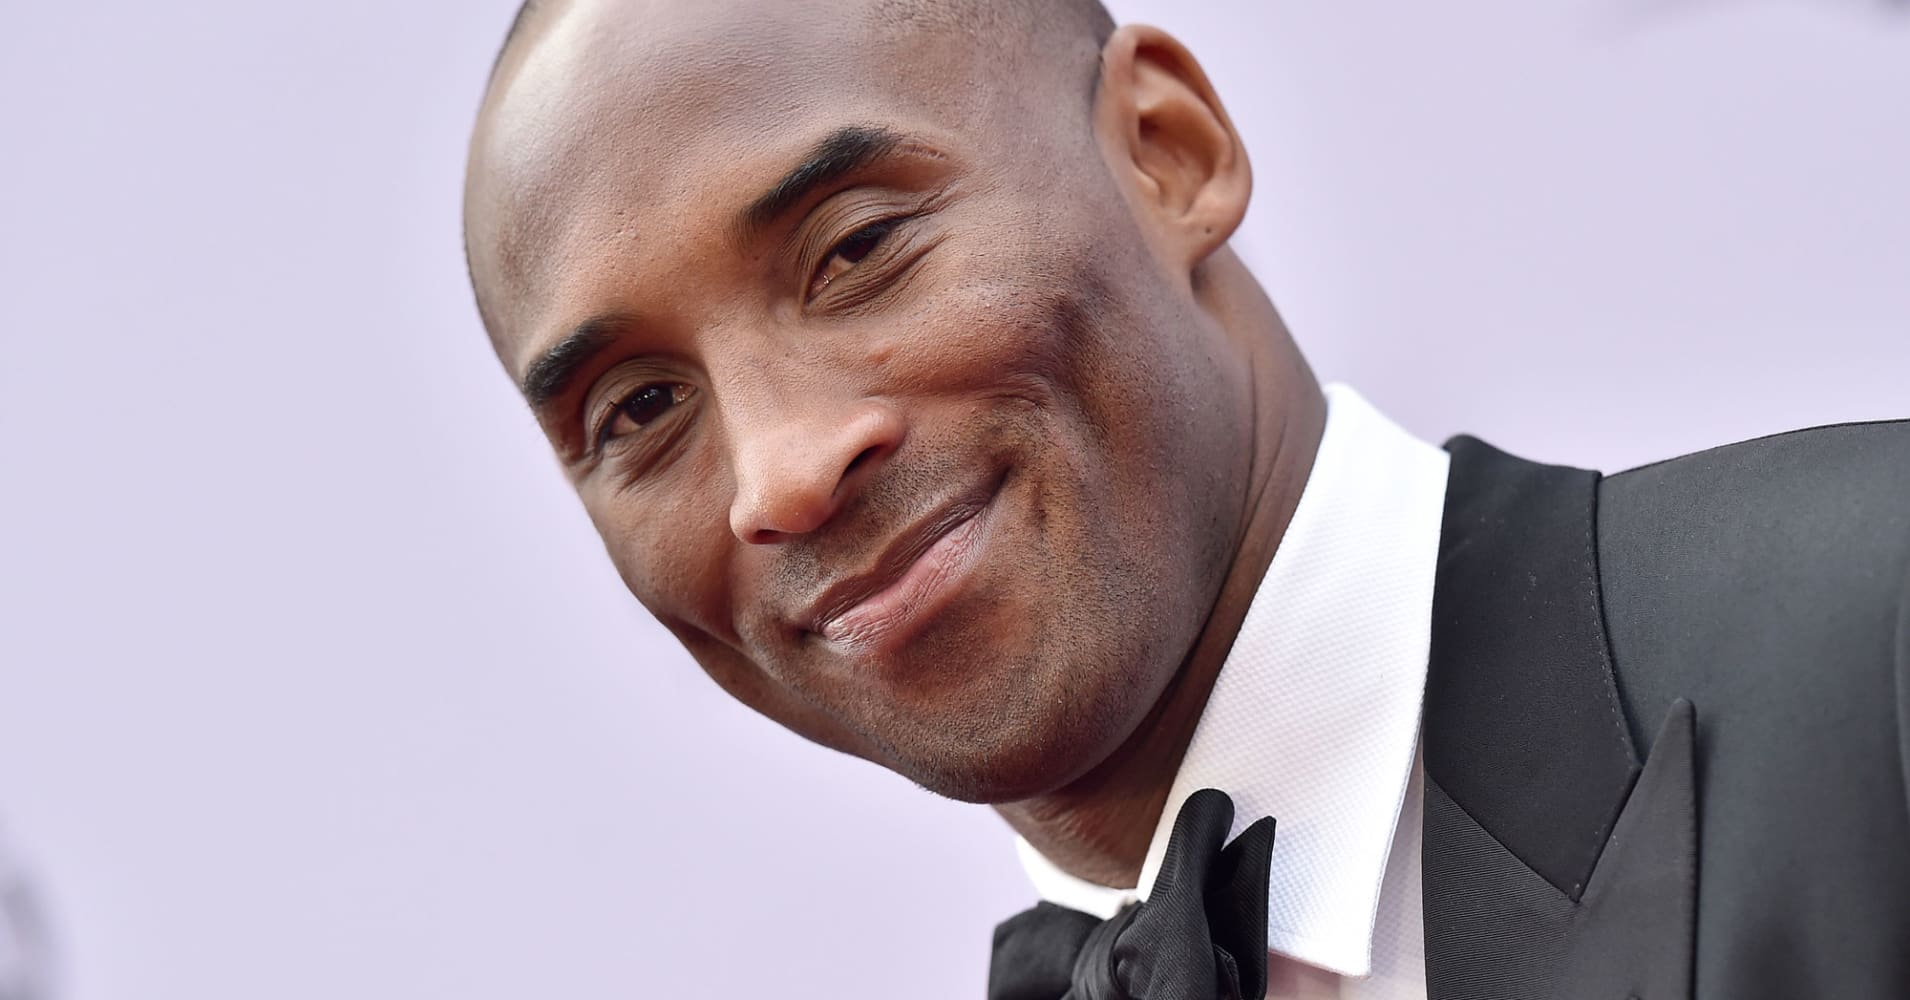 Kobe Bryant Says Leaders Have To Listen Carefully